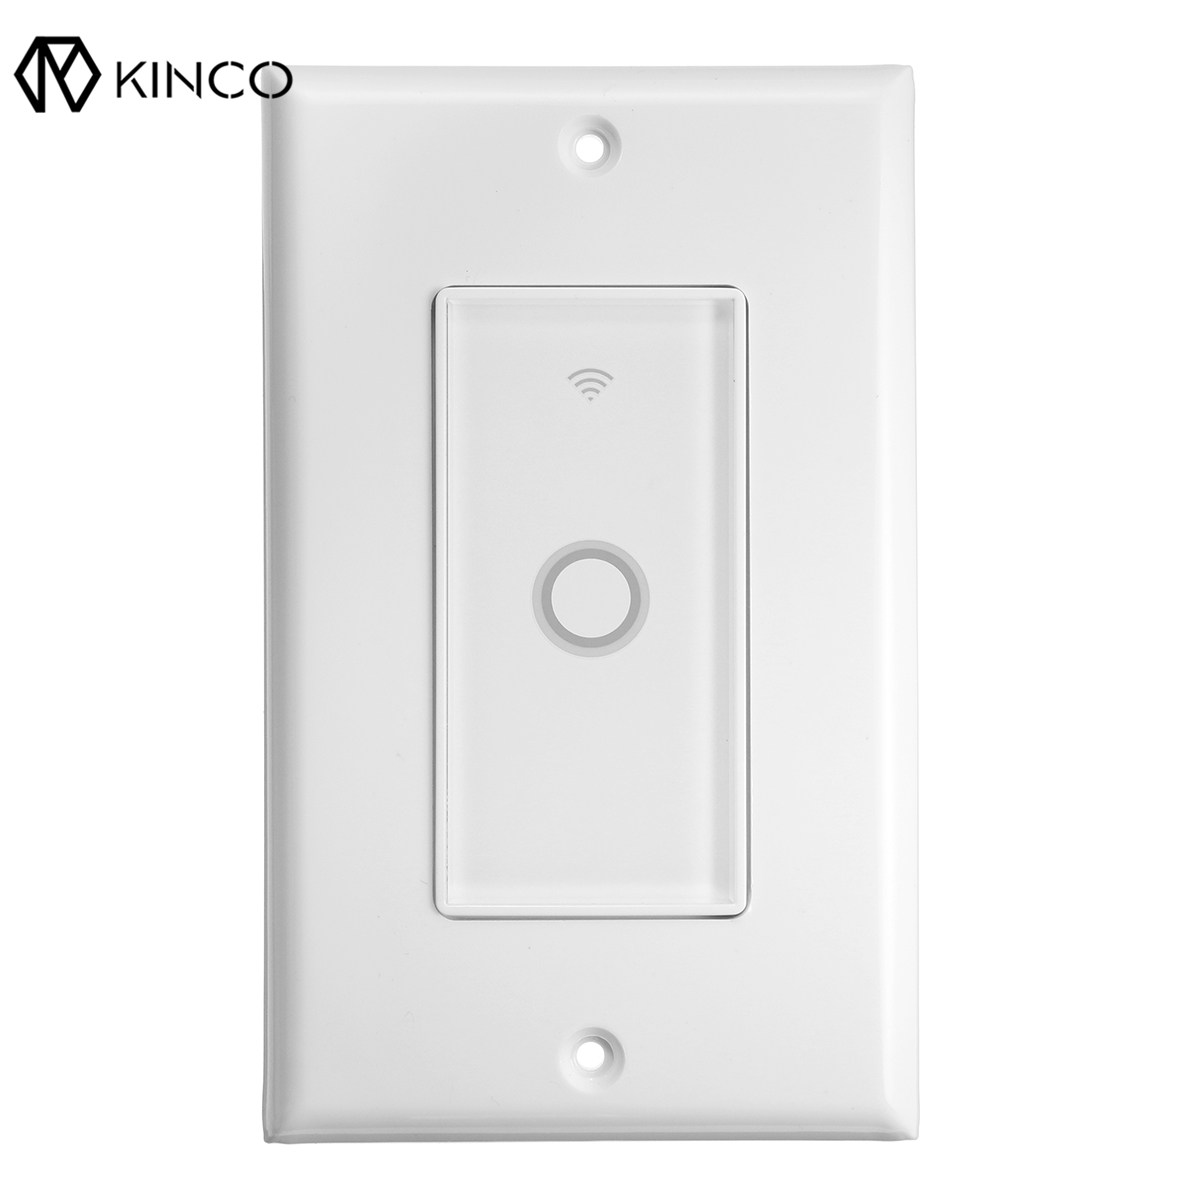 Kinco Convenient 110V WIFI Smart Wall Switch Touch Panel Timing APP Remote Control For Alexa/Google Home Assistant